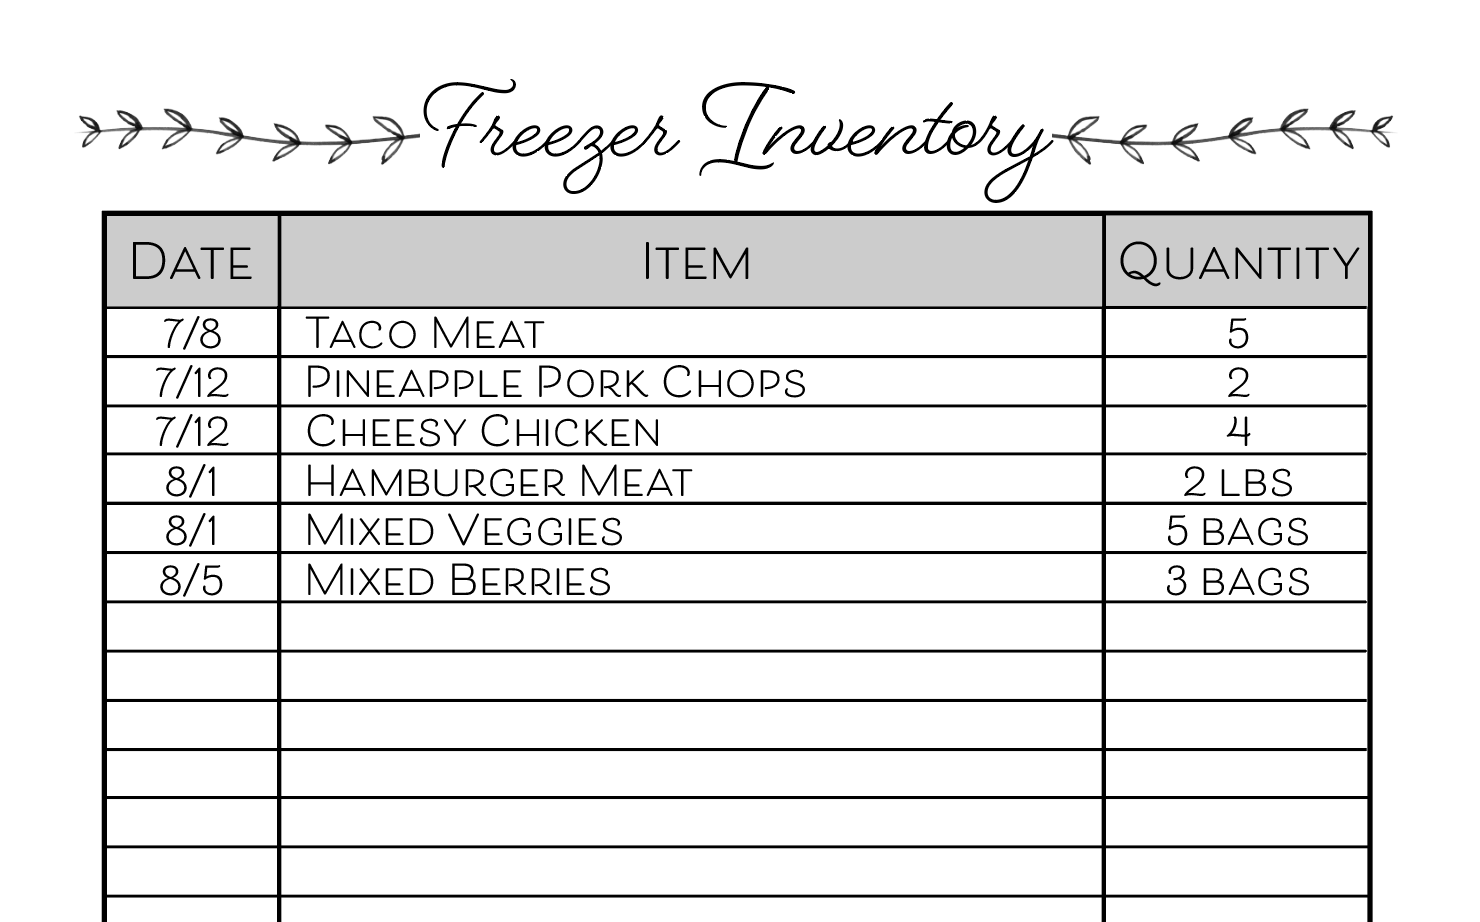 photo about Freezer Inventory Printable called Absolutely free Printable Freezer Stock Sheet: Help you save Economical and Consume